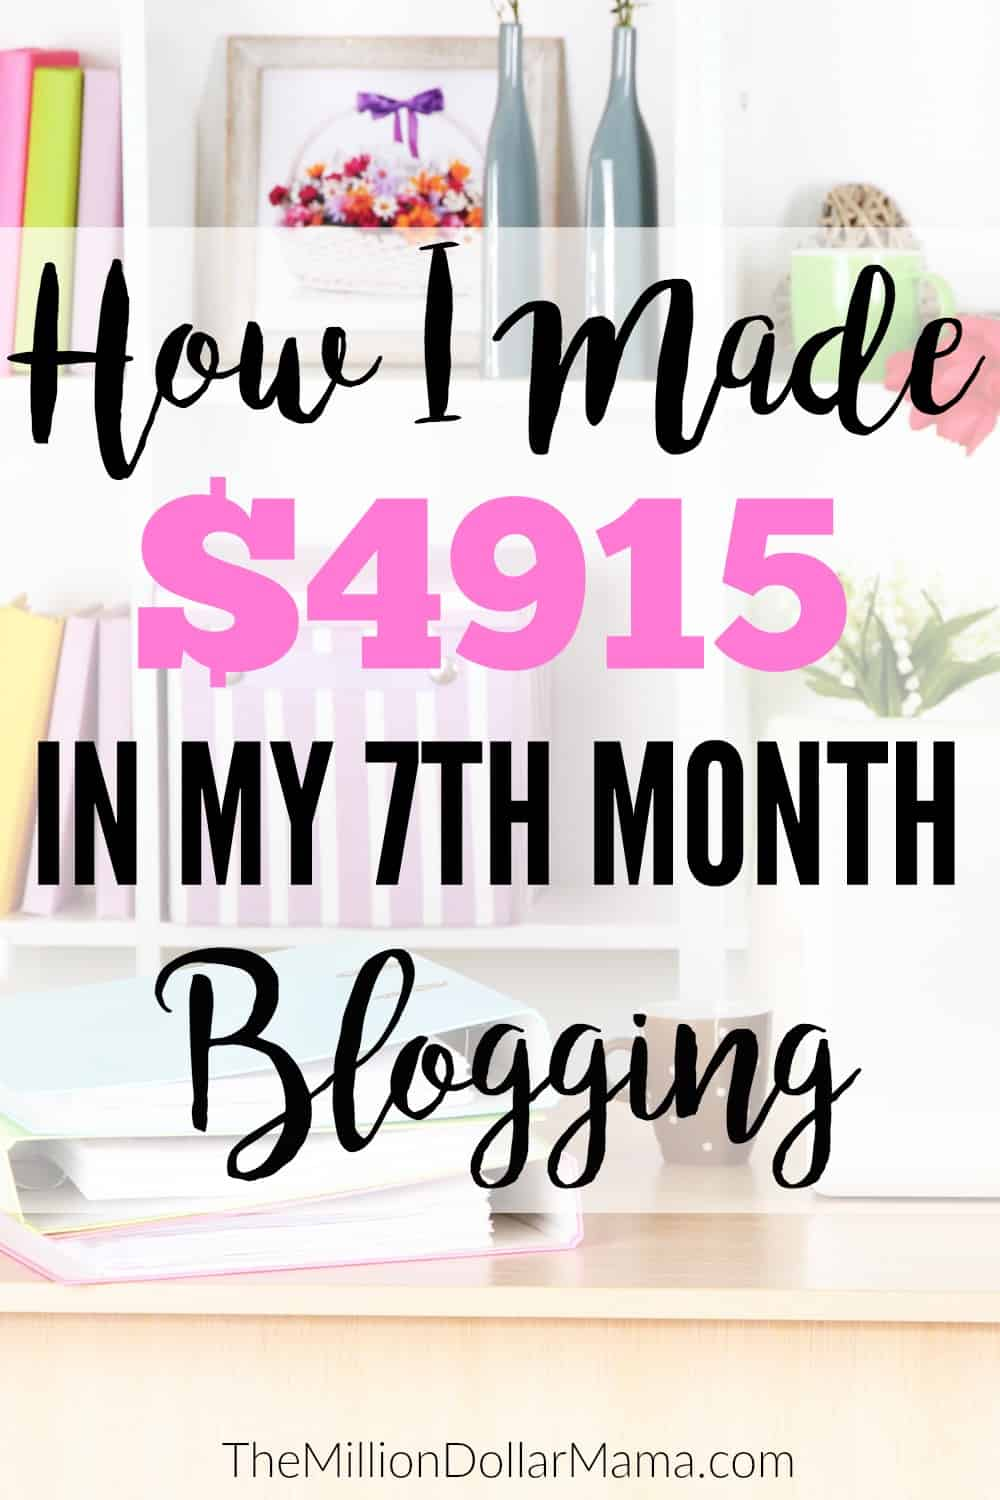 February 2017 Online Income Report - How I Made $4915 In My 7th Month Blogging